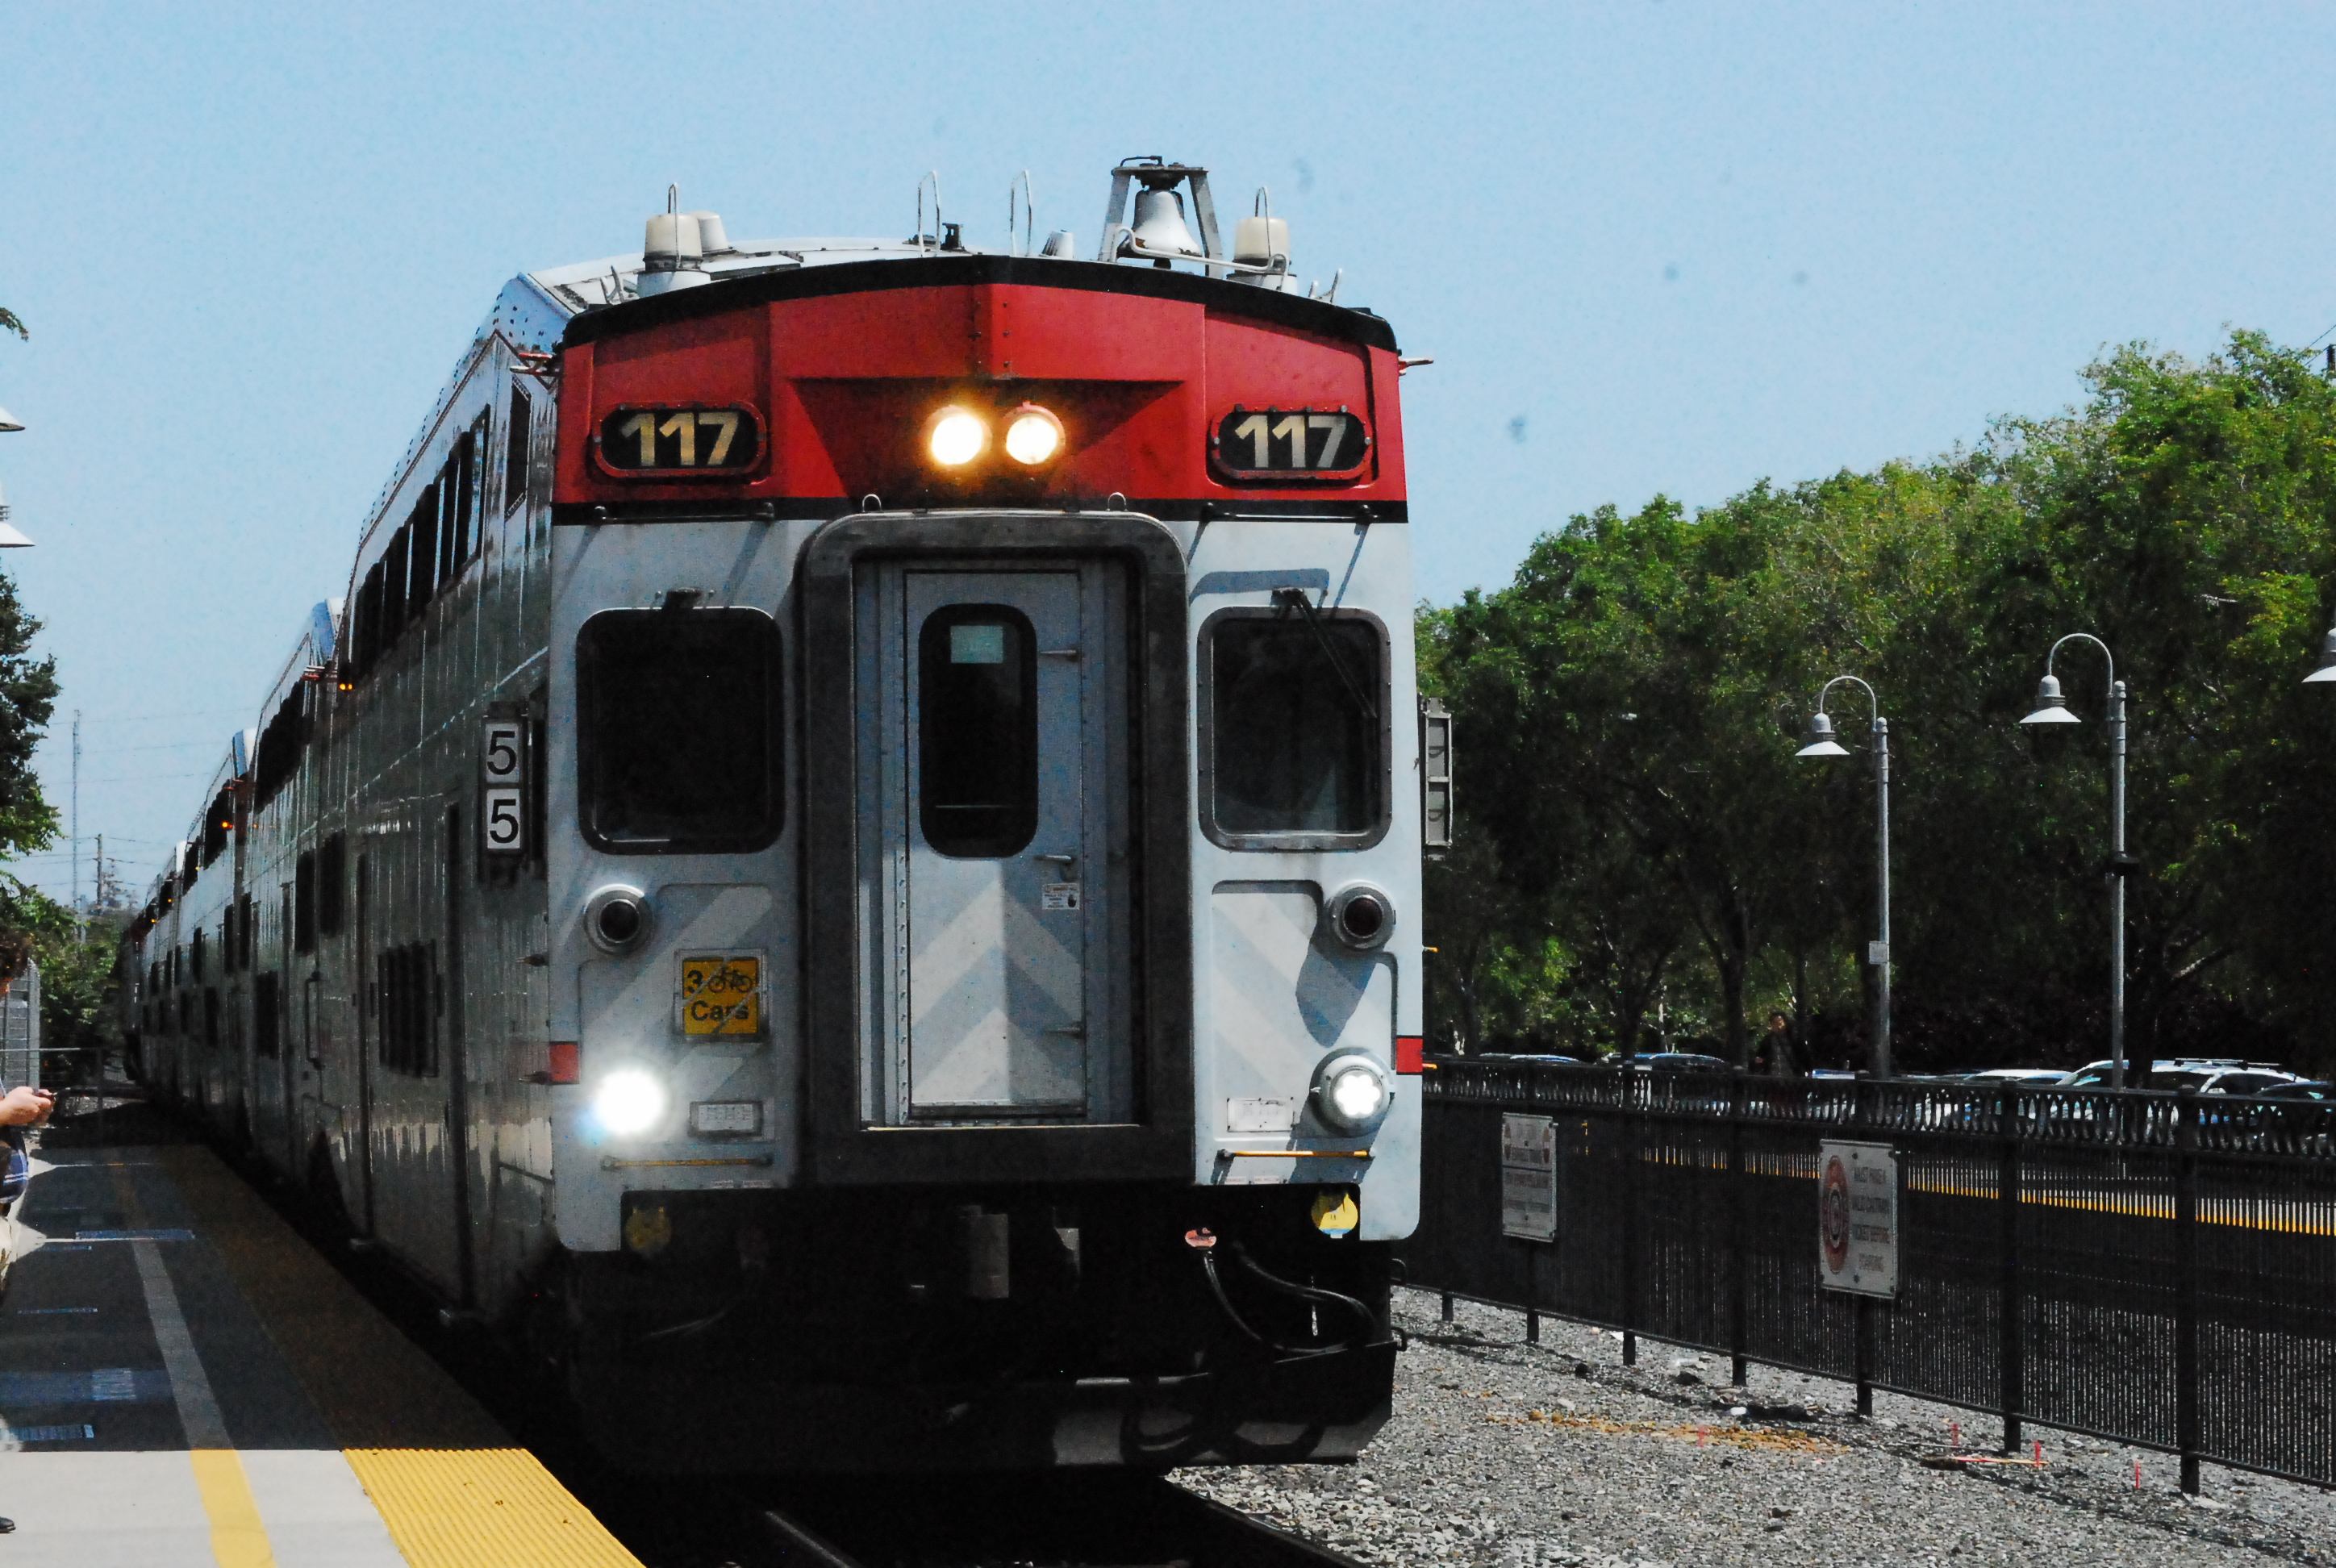 A Bombardier Bilevel cab car leading a northbound train at Palo Alto Station